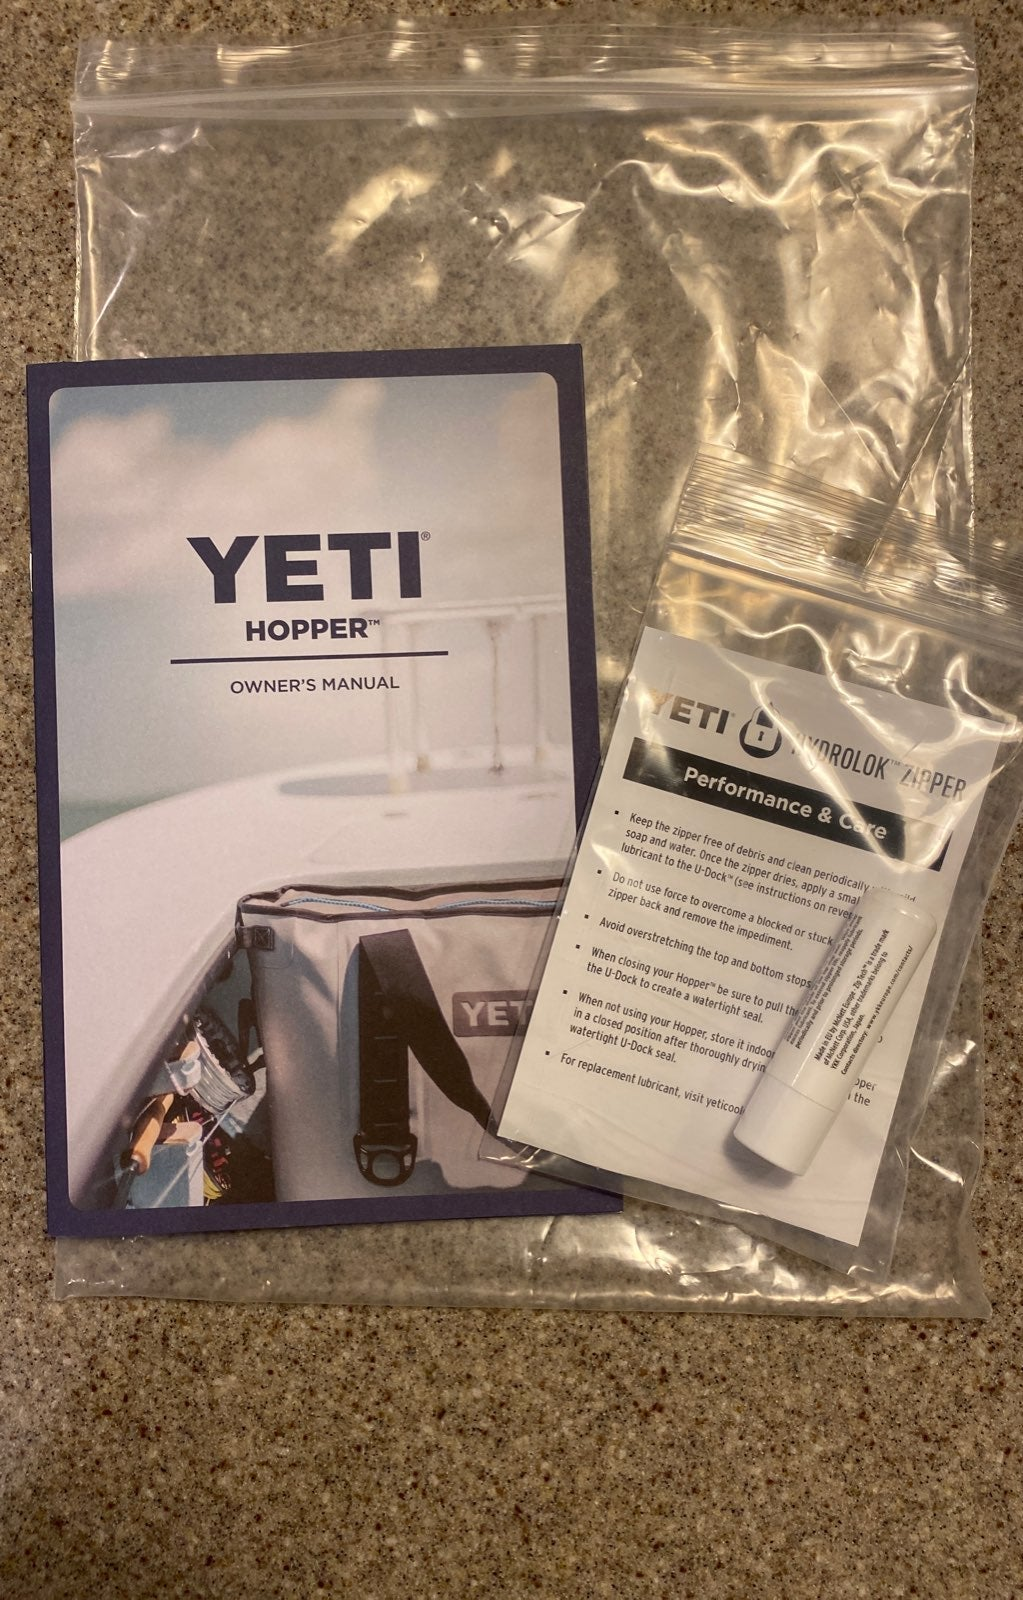 Yeti Hopper owner's manual, zipper lube